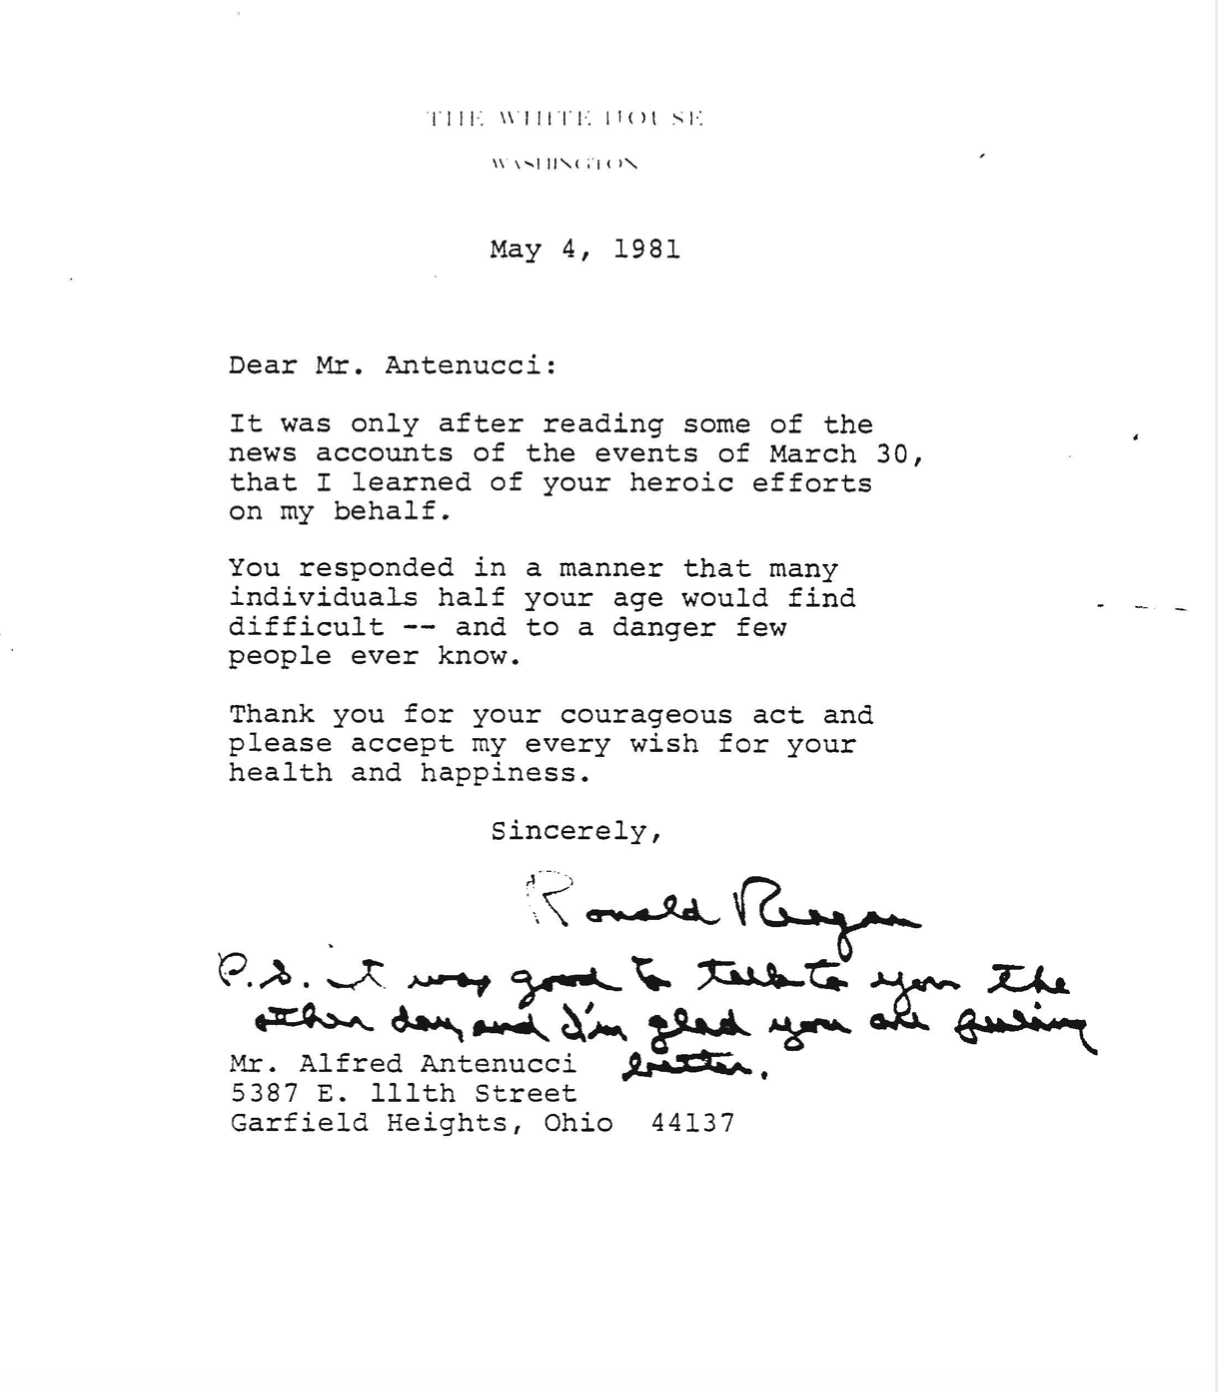 A letter from President Ronald Reagan to Alfred Antenucci